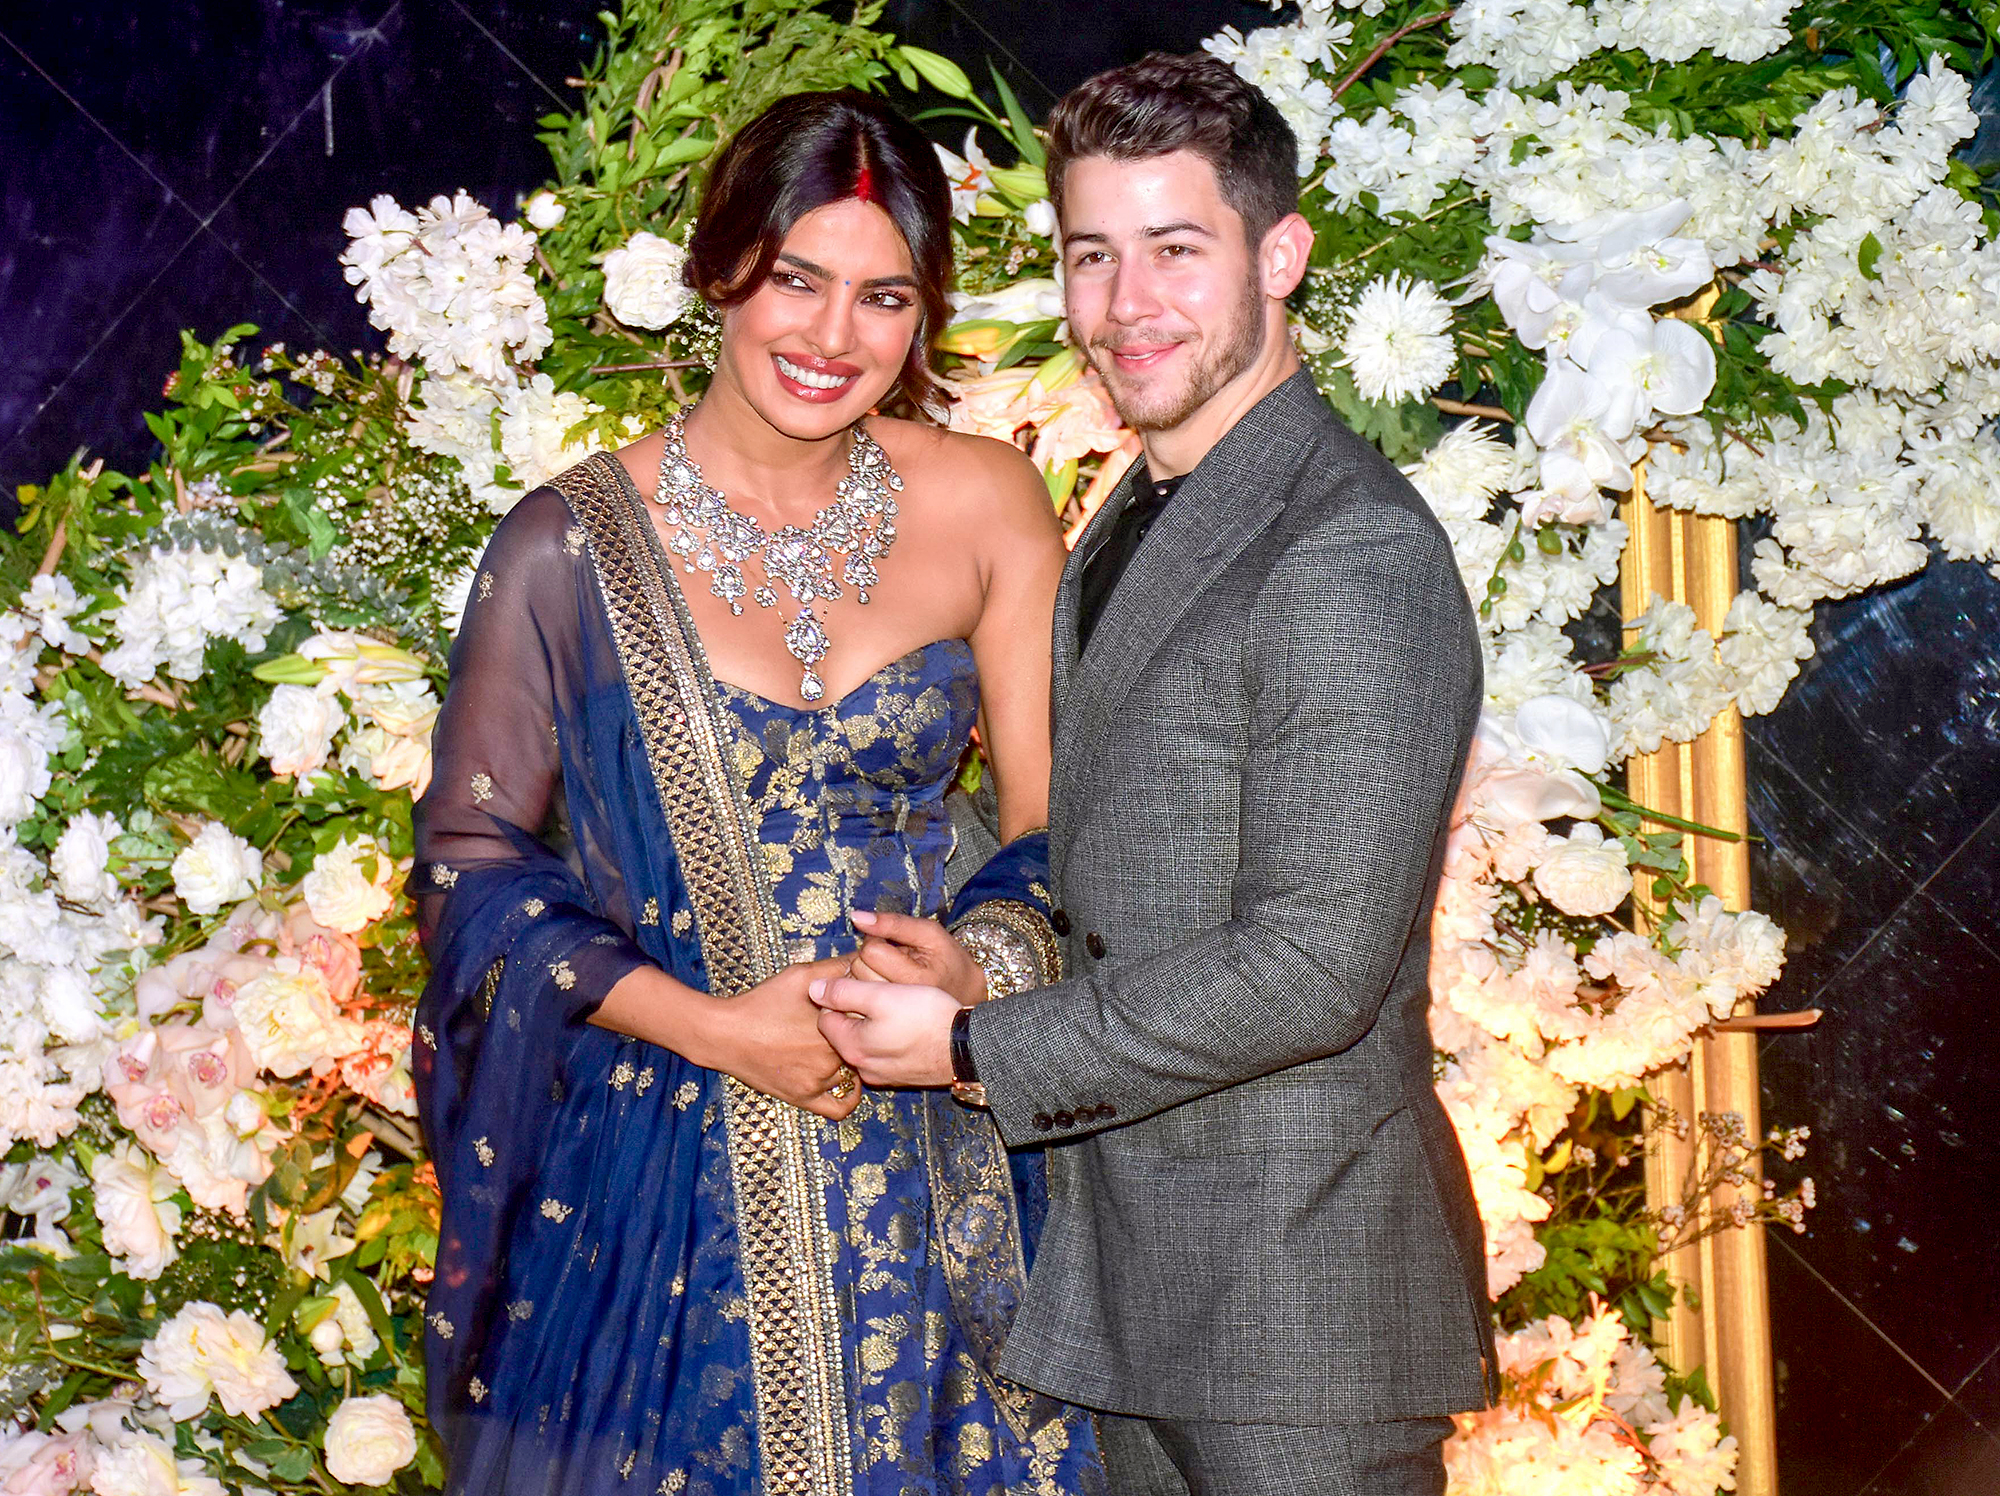 Nick-Jonas-and-Priyanka-Chopra-Mumbai-Wedding-Reception - The duo were all smiles as they held hands during the reception.